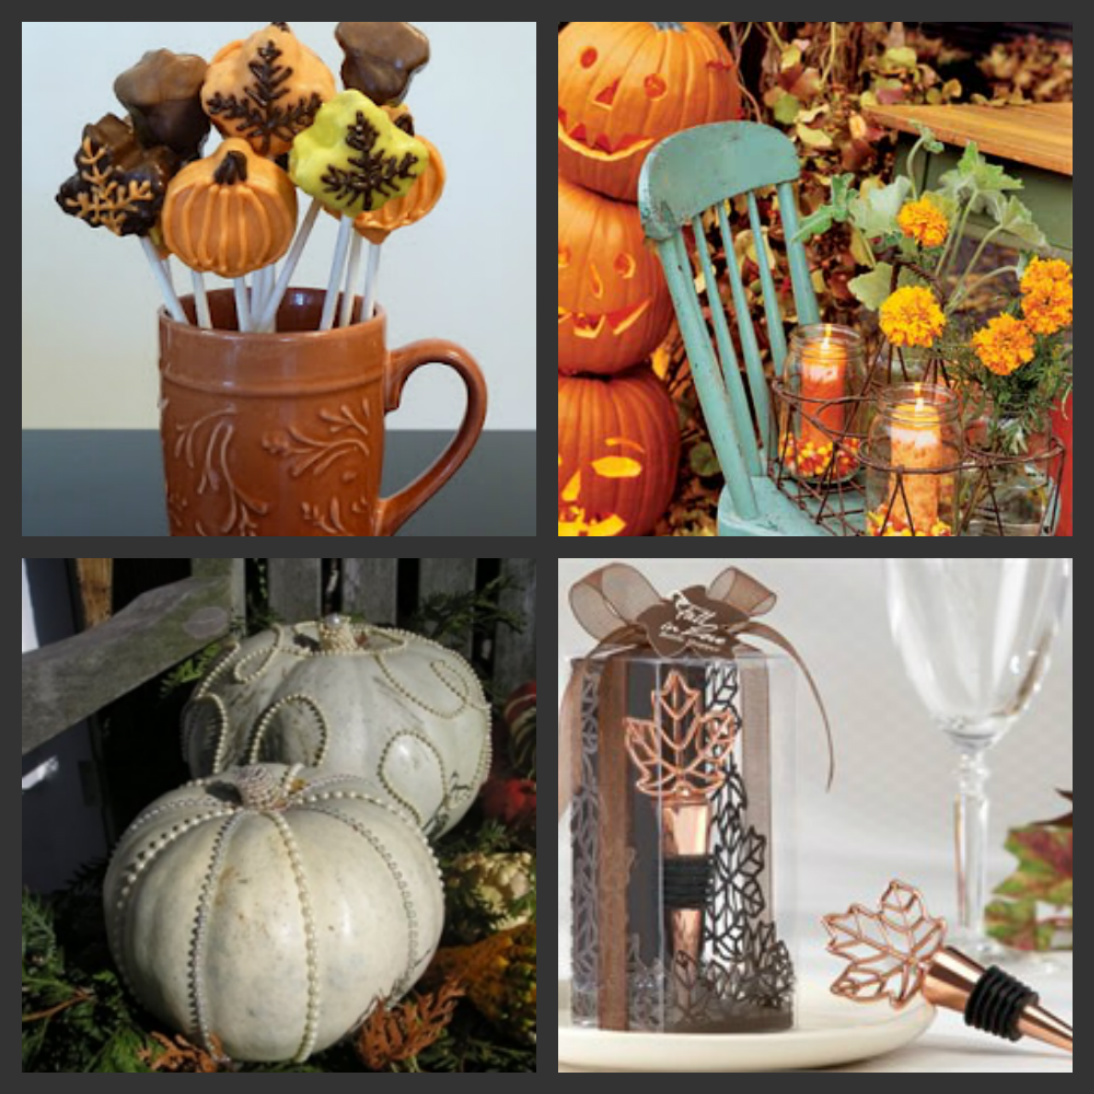 Weddings are fun blog autumn themed wedding shower ideas for Fun blog ideas